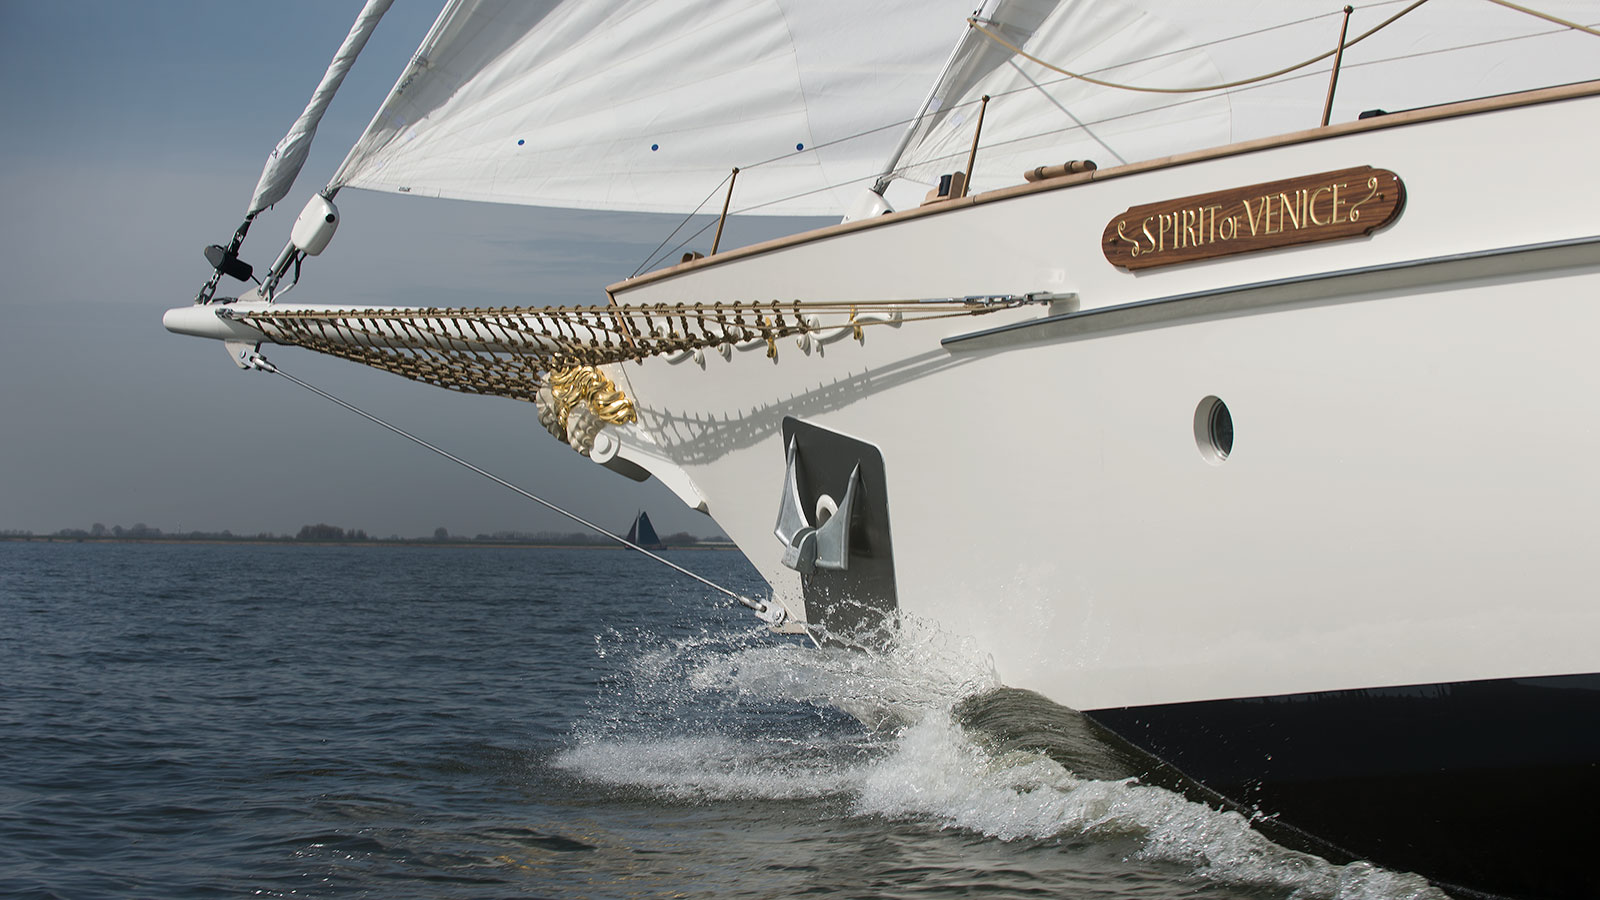 the-prow-of-the-gaff-rigged-sailing-superyacht-spirit-of-venice-credit-olivier-van-meer-vmg-yachtbuilders